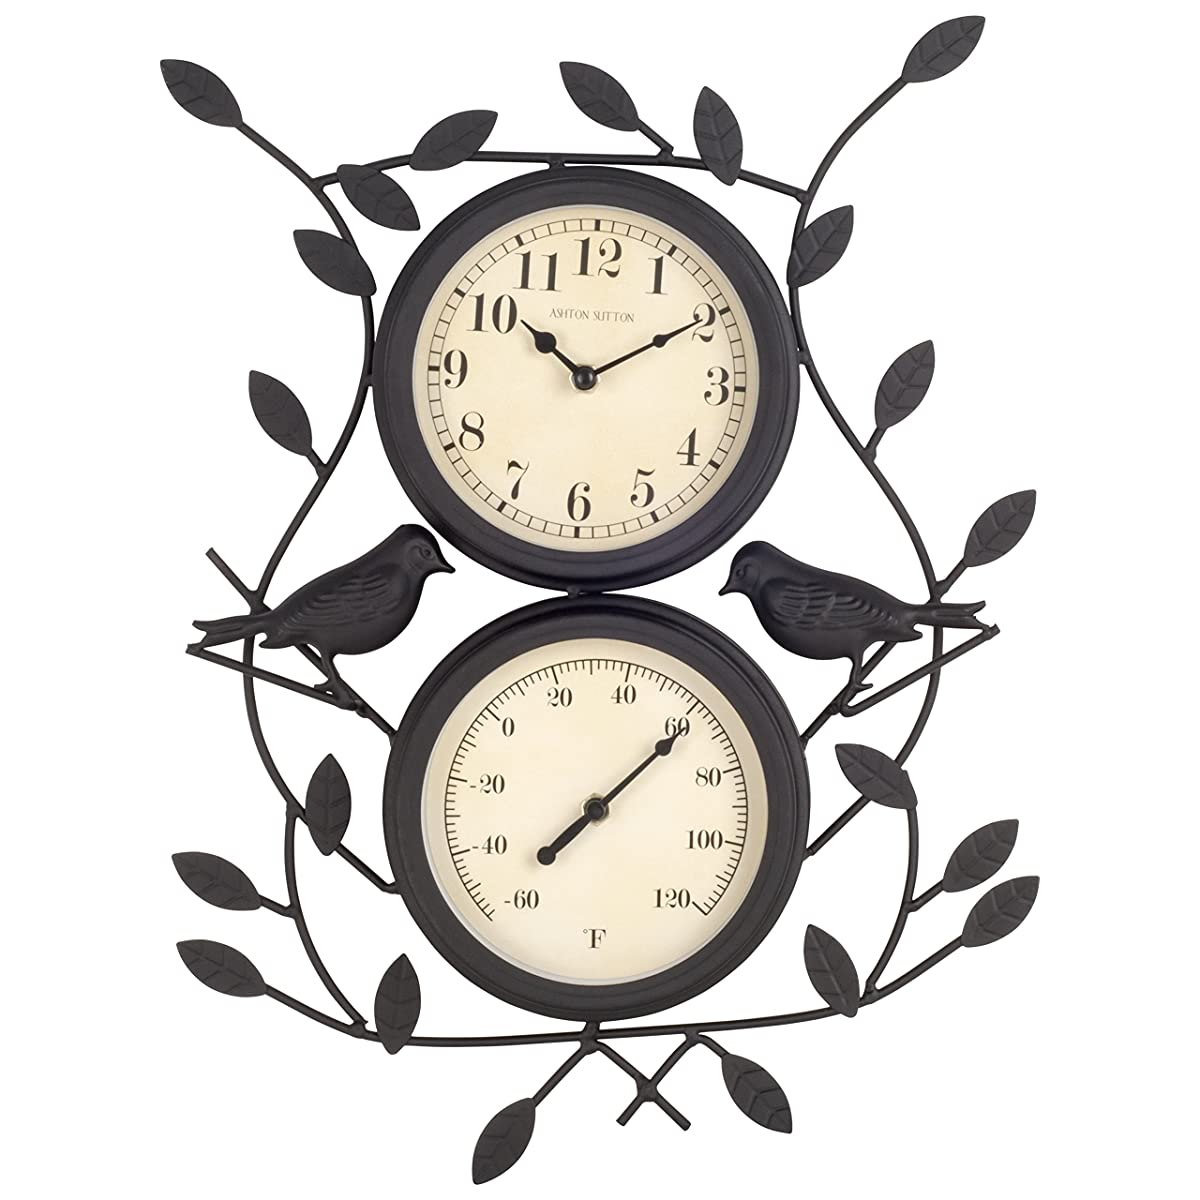 Ashton Sutton H308-15F Bird Wall Clock and Thermometer